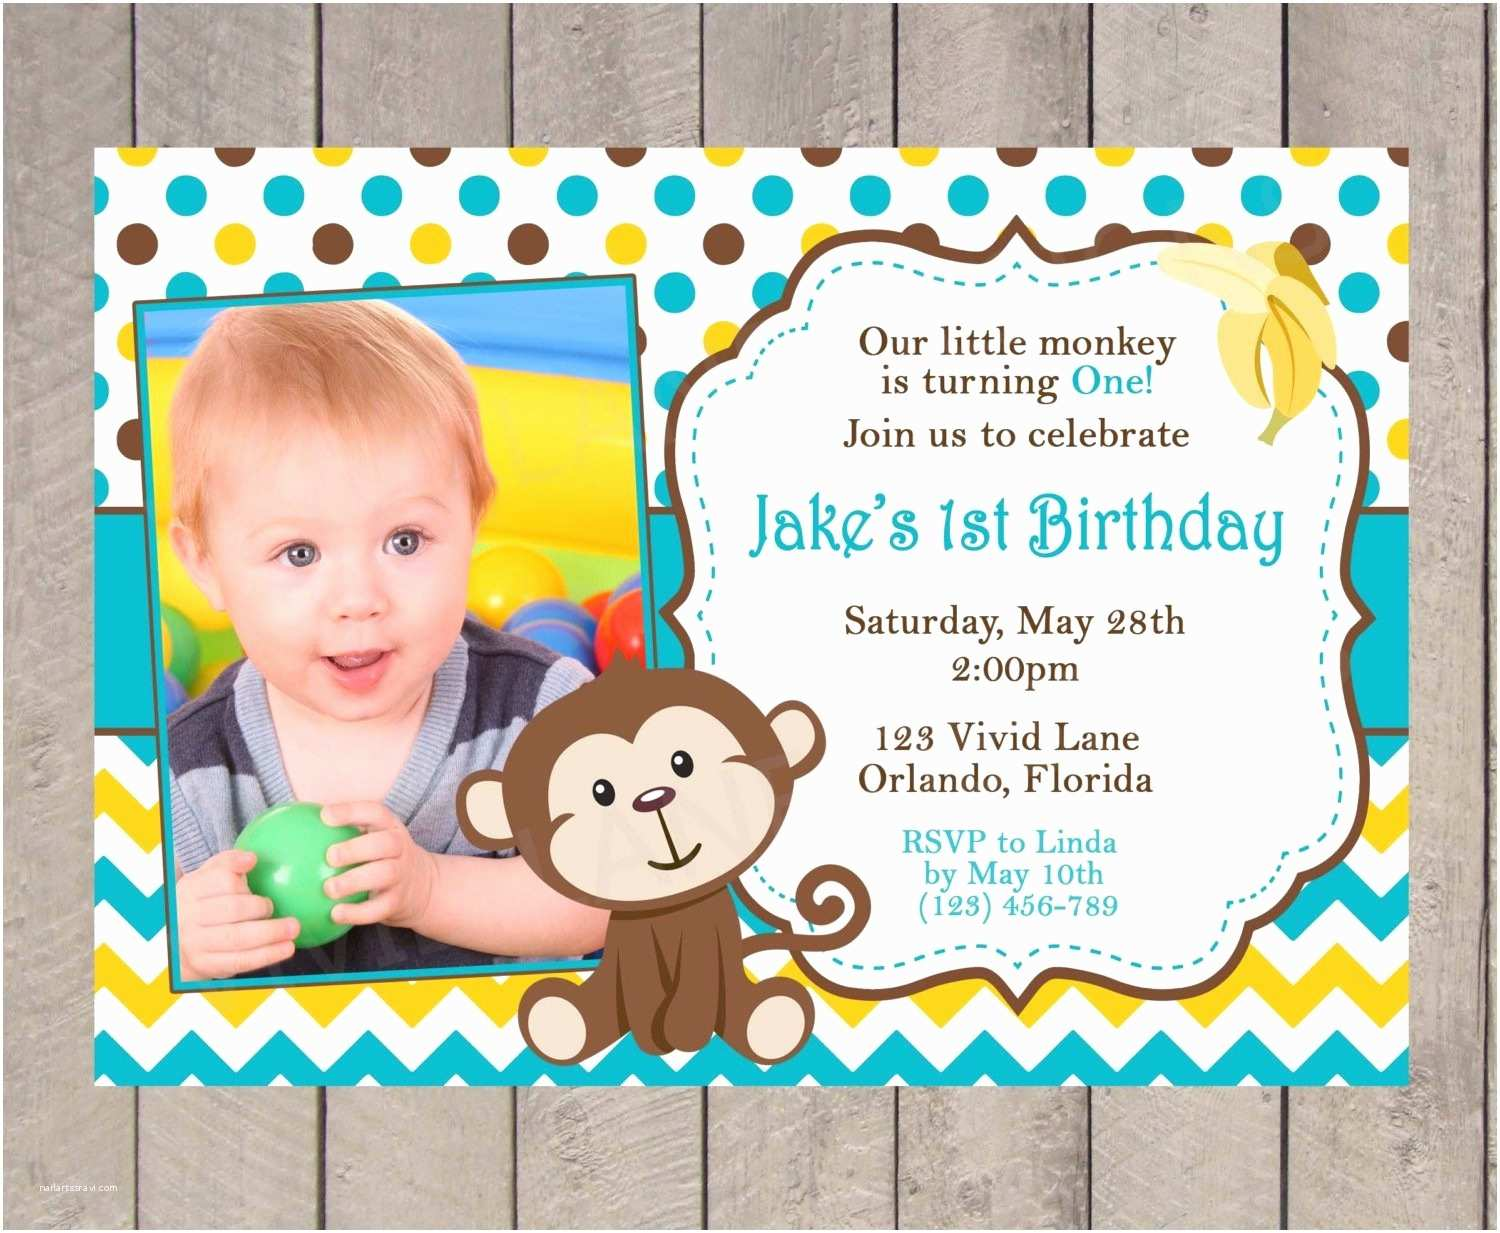 Boys Birthday Party Invitations 2nd Birthday Invitation Cards Templates for Boys